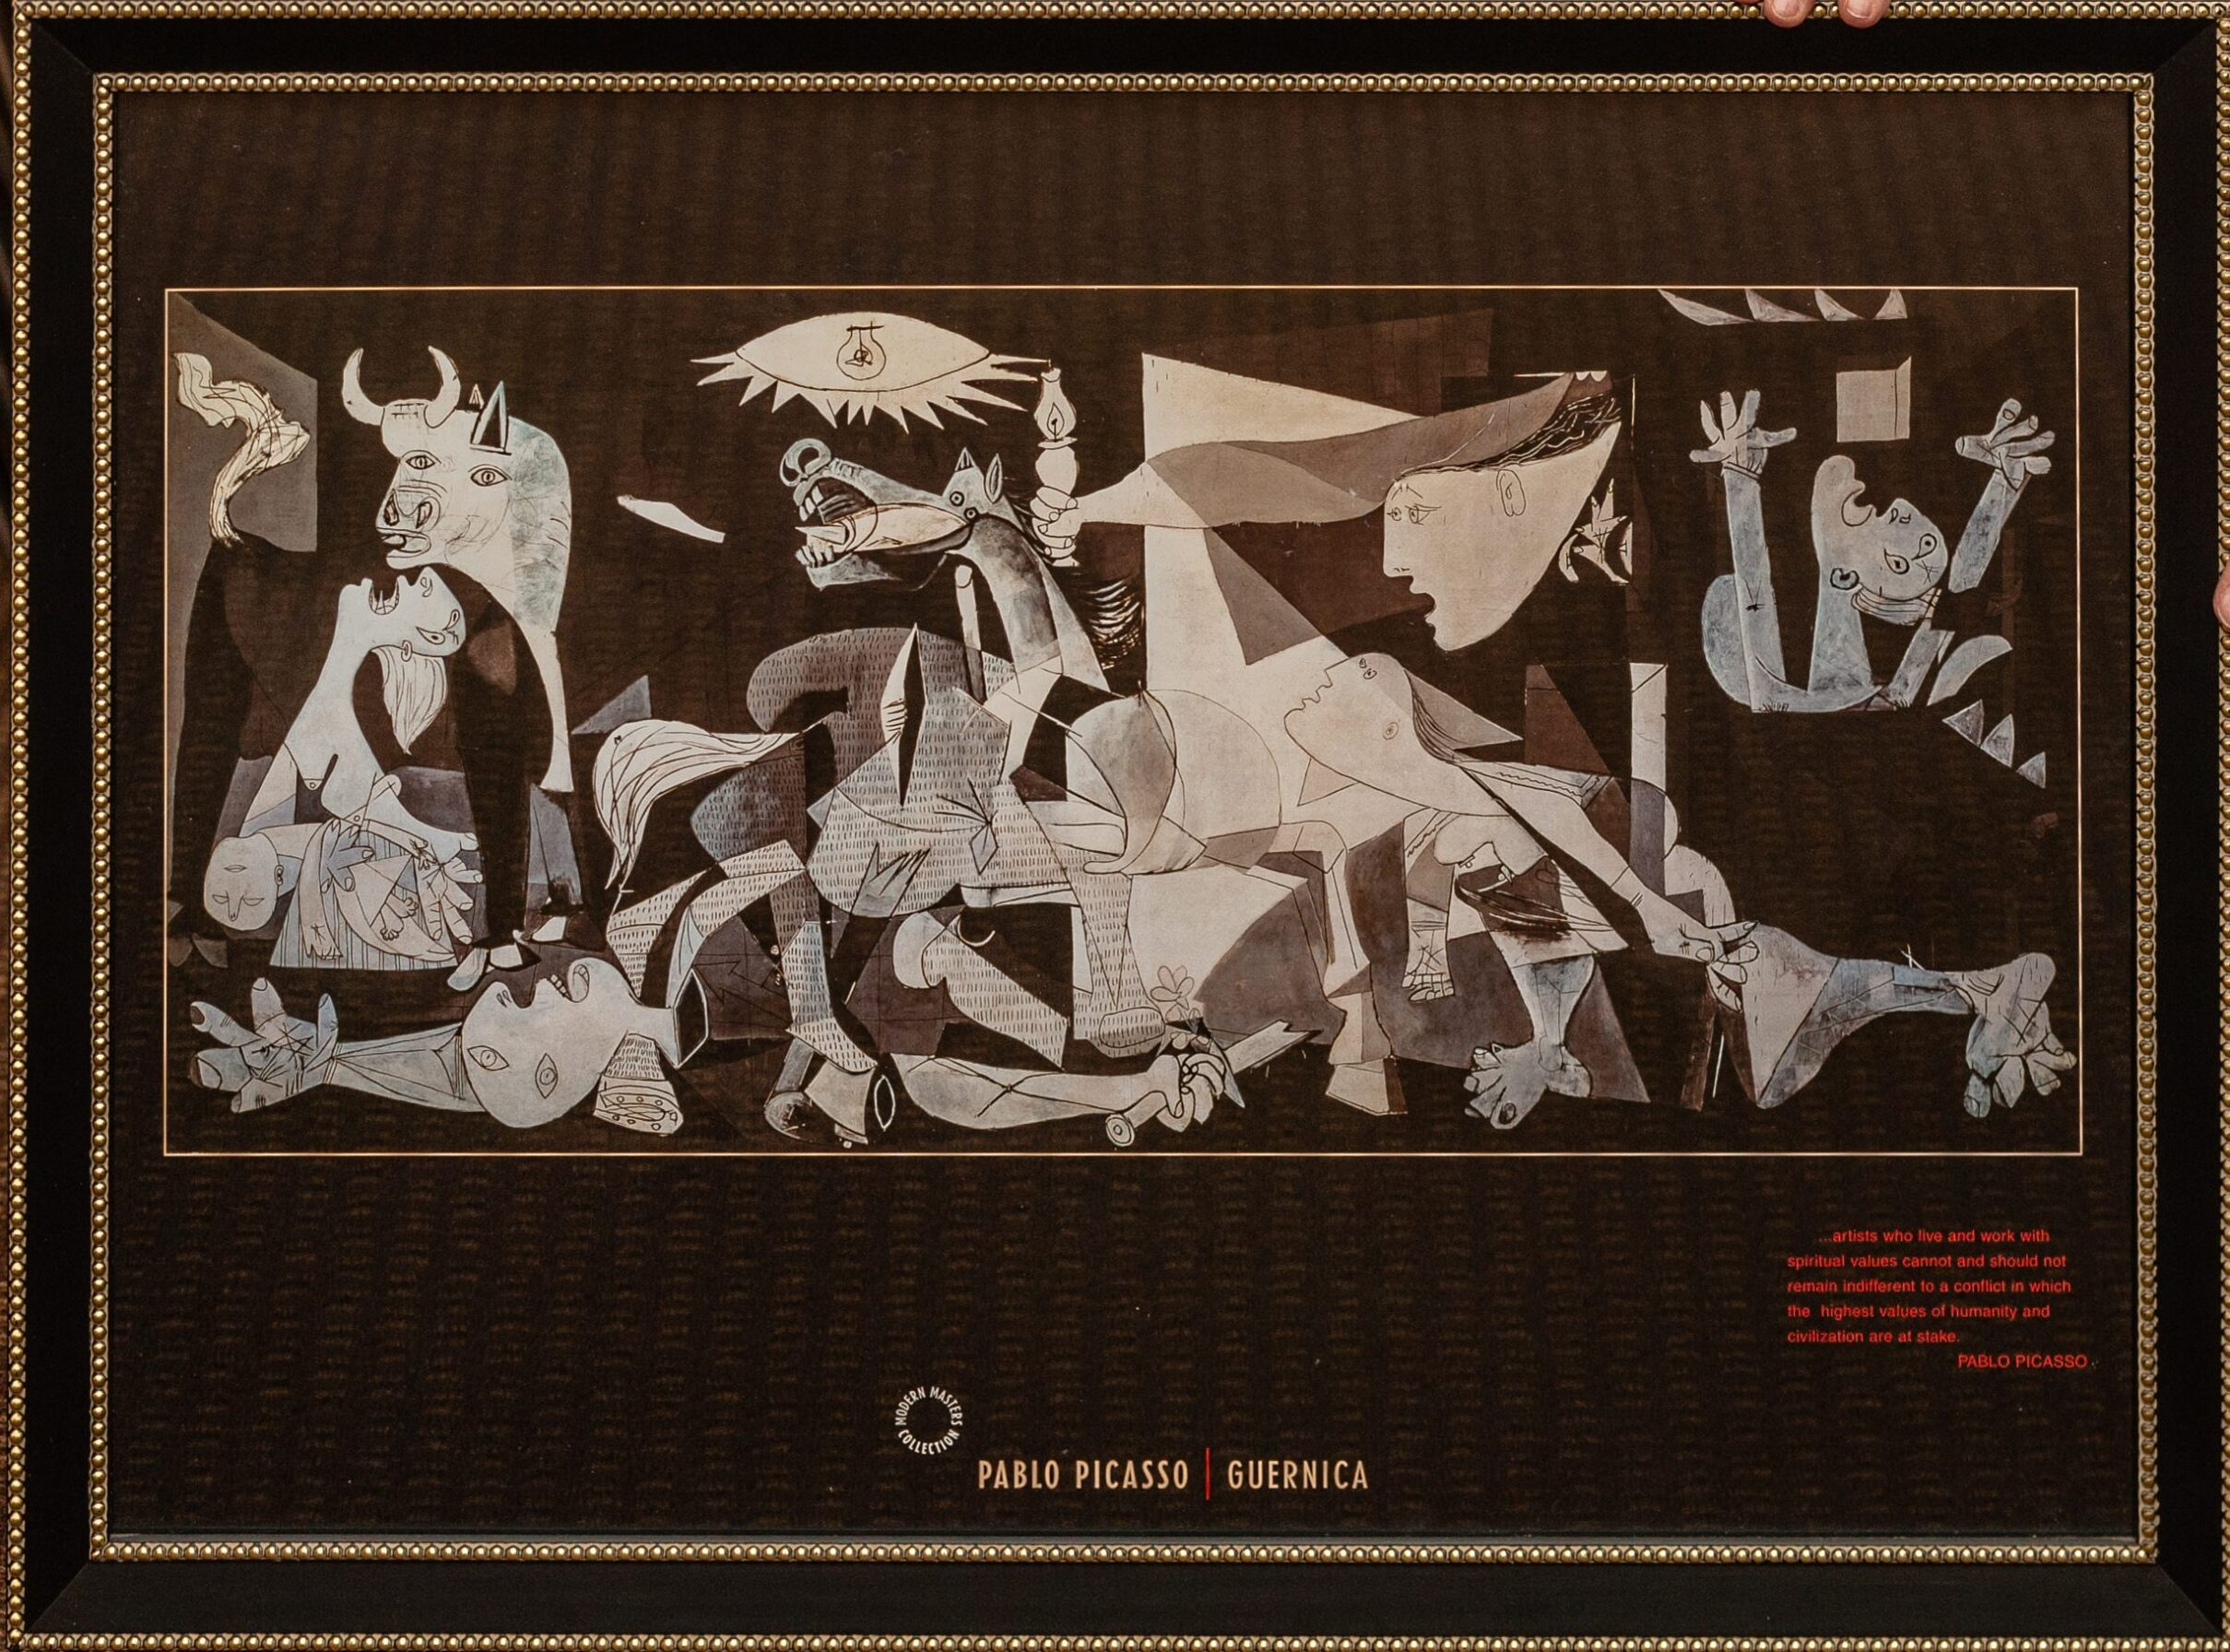 Guernica by Pablo Picasso 28x16